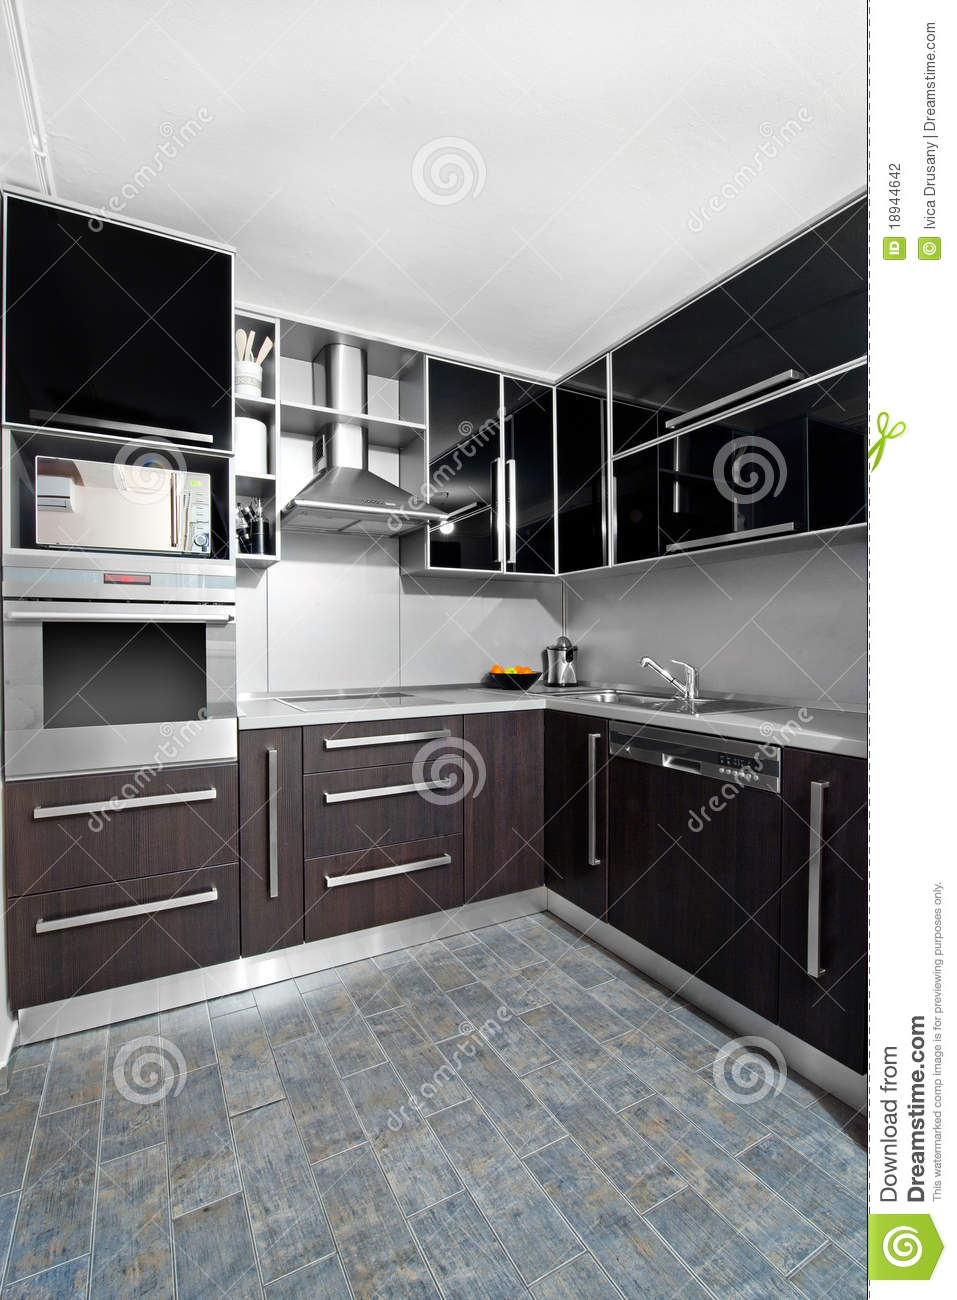 modern kitchen in black and wenge colors stock image 18944641. Black Bedroom Furniture Sets. Home Design Ideas